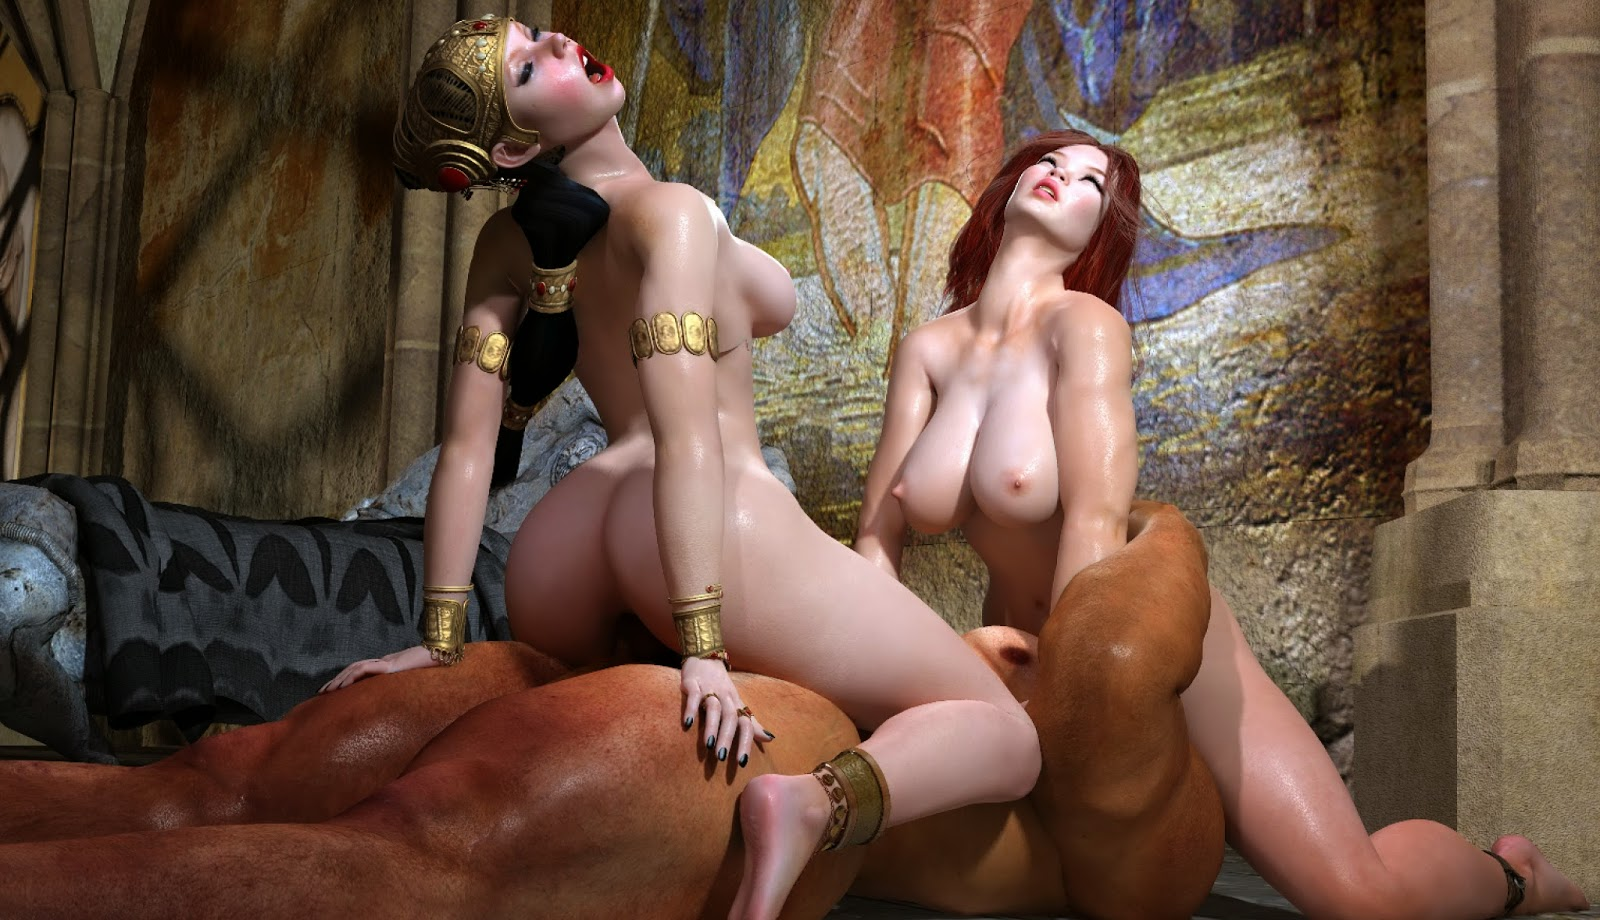 Three orcs fuck girl 3d hentai naughty pornstar